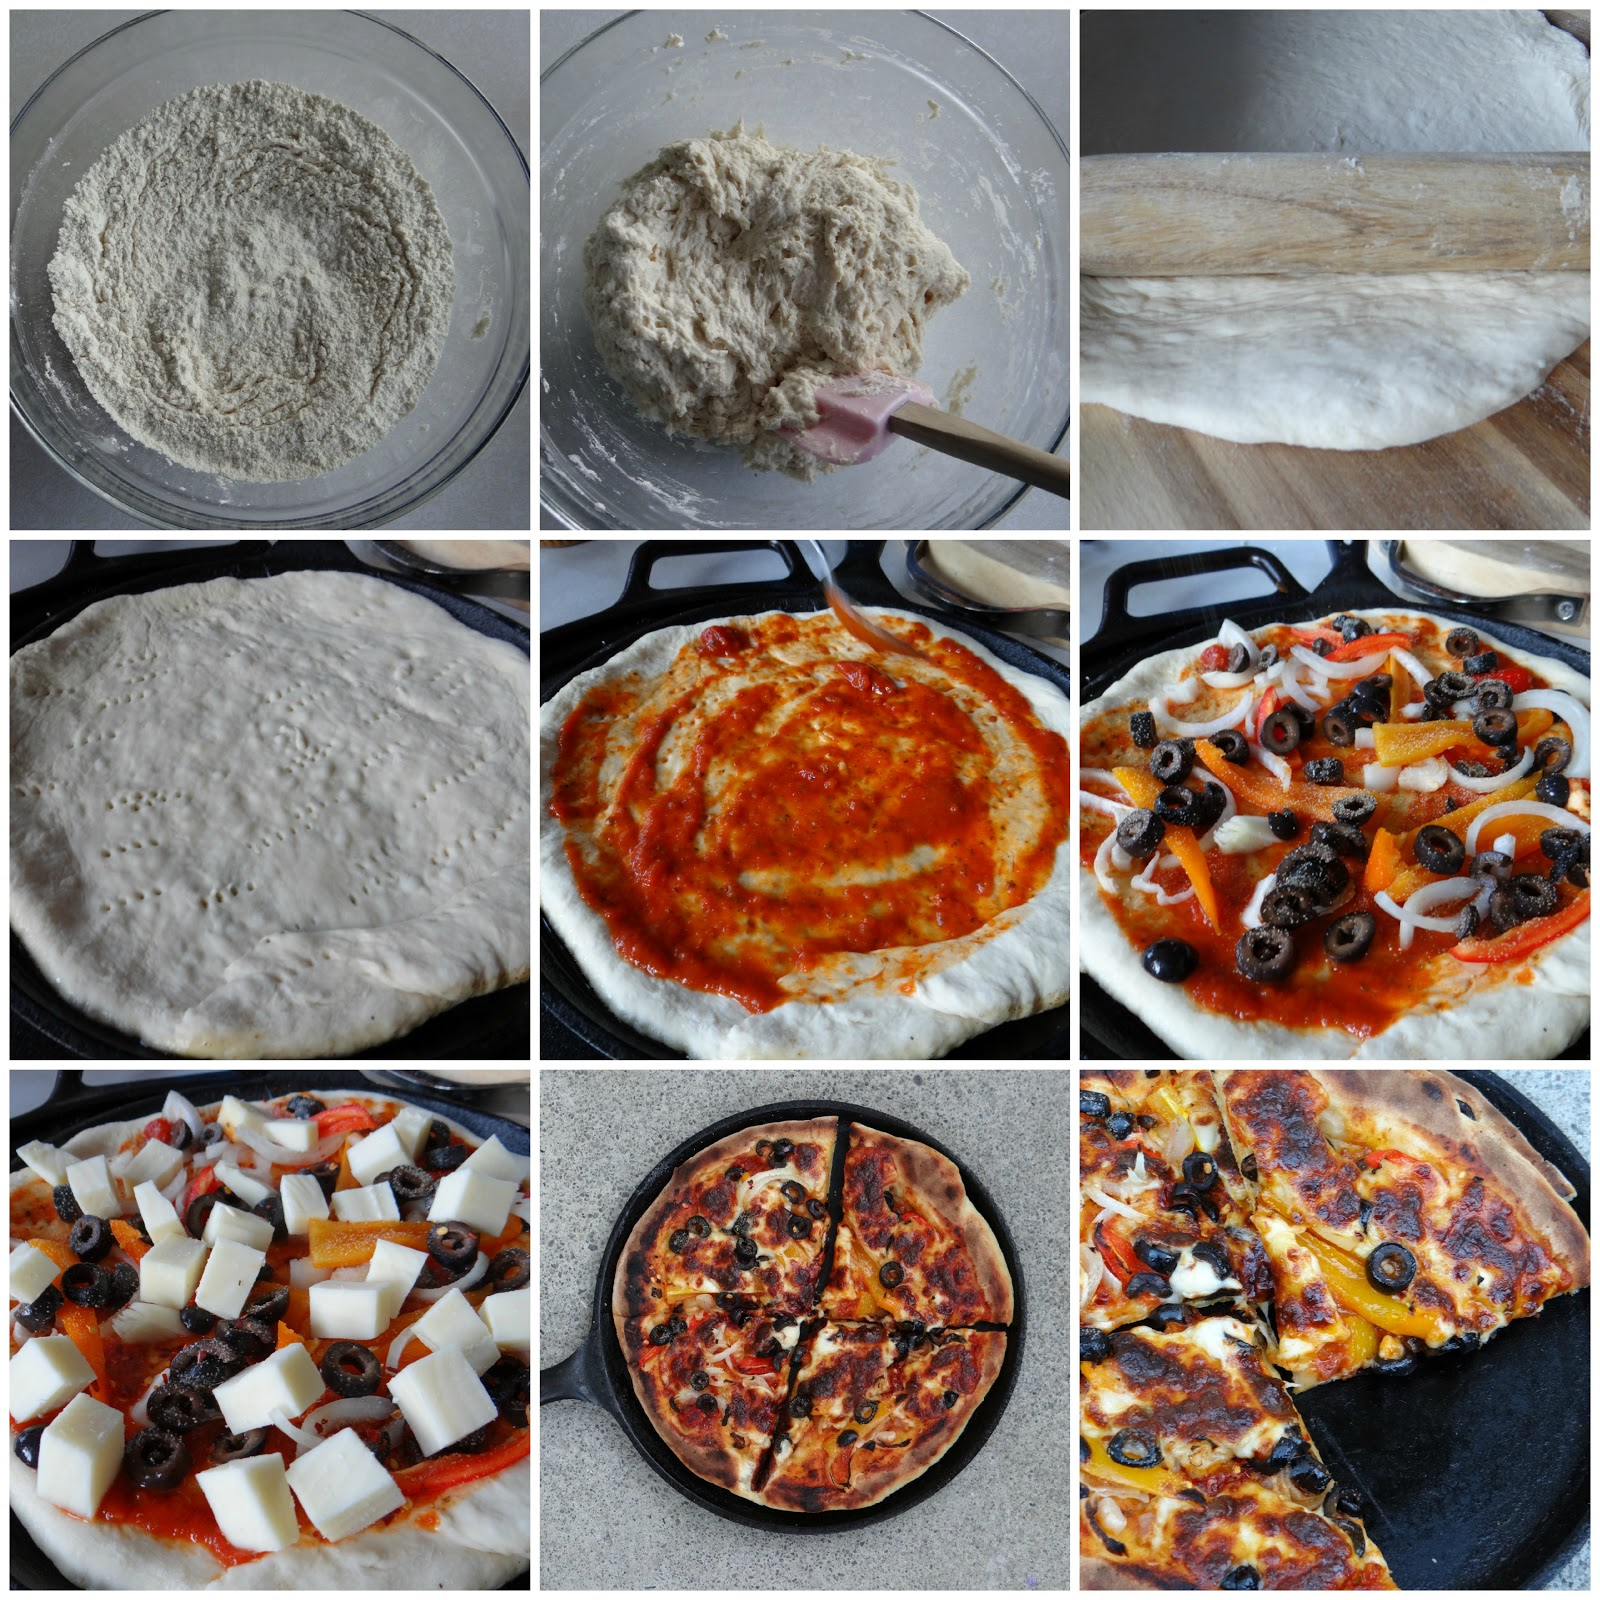 Pizza Without Yeast In 20 Minutes: Learning From Jamie Oliver | fewminutewonders